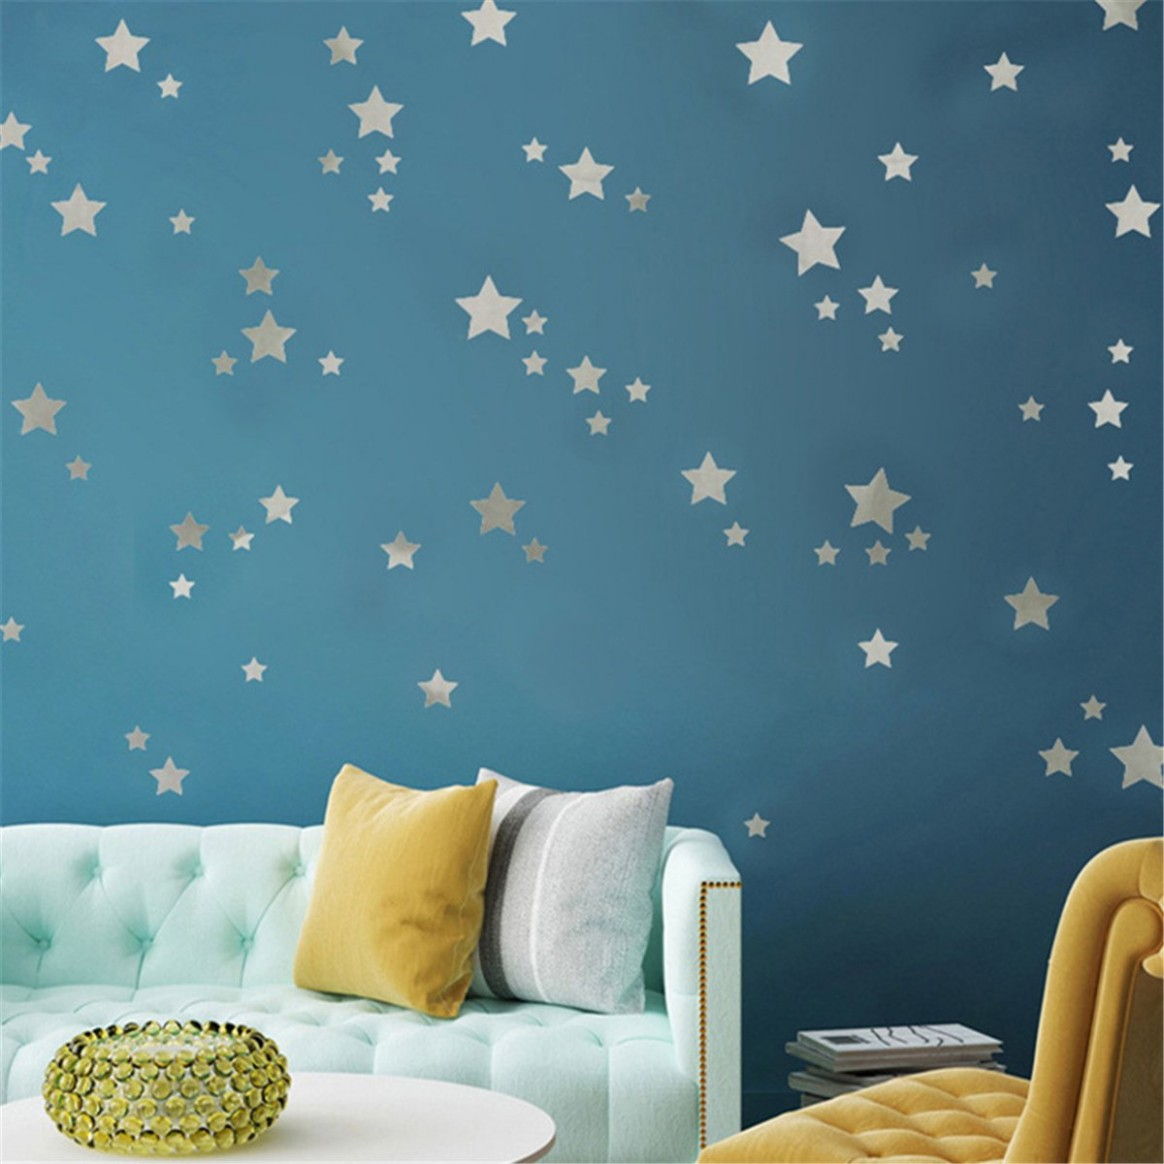 Wall Decal Vinyl Sticker for Kids Boy Girls Baby Room Decoration Good Night  Nursery Wall Decor Home House Bedroom Design(silver) - Baby Room Wall Decor